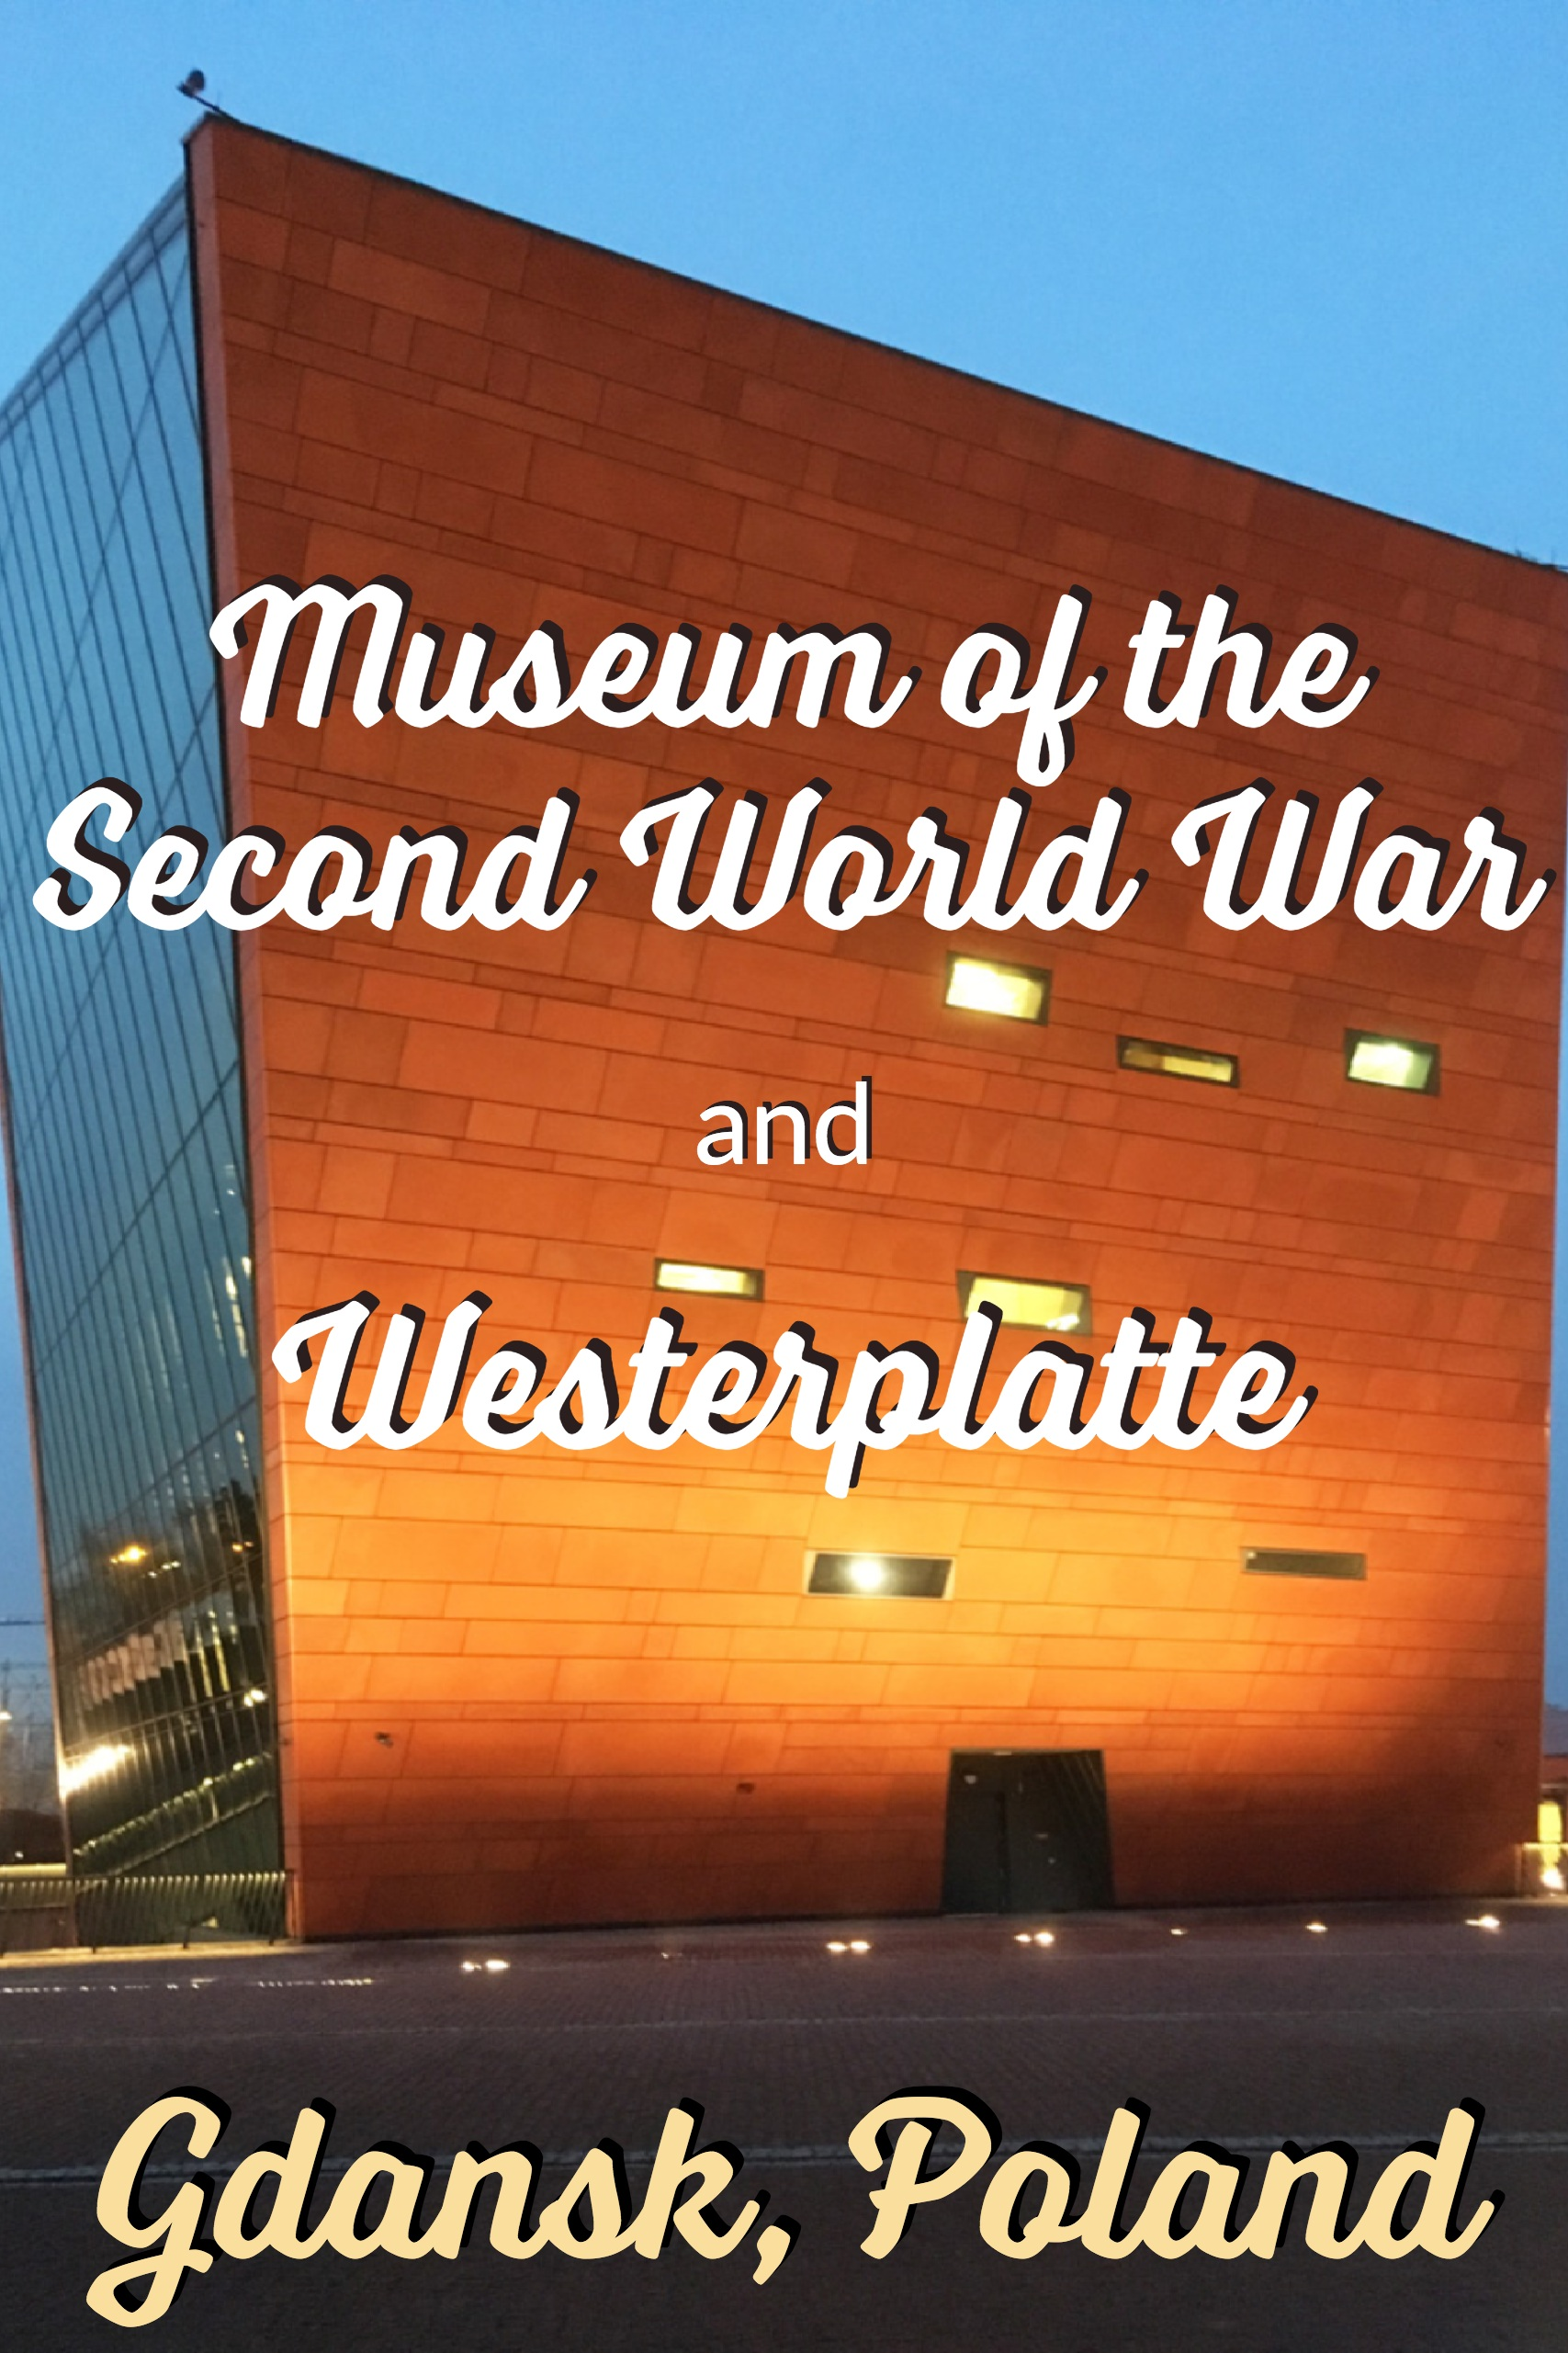 WWII Museum of the Second World War and Westerplatte - Gdansk, Poland #WWII #Europetravel #Poland